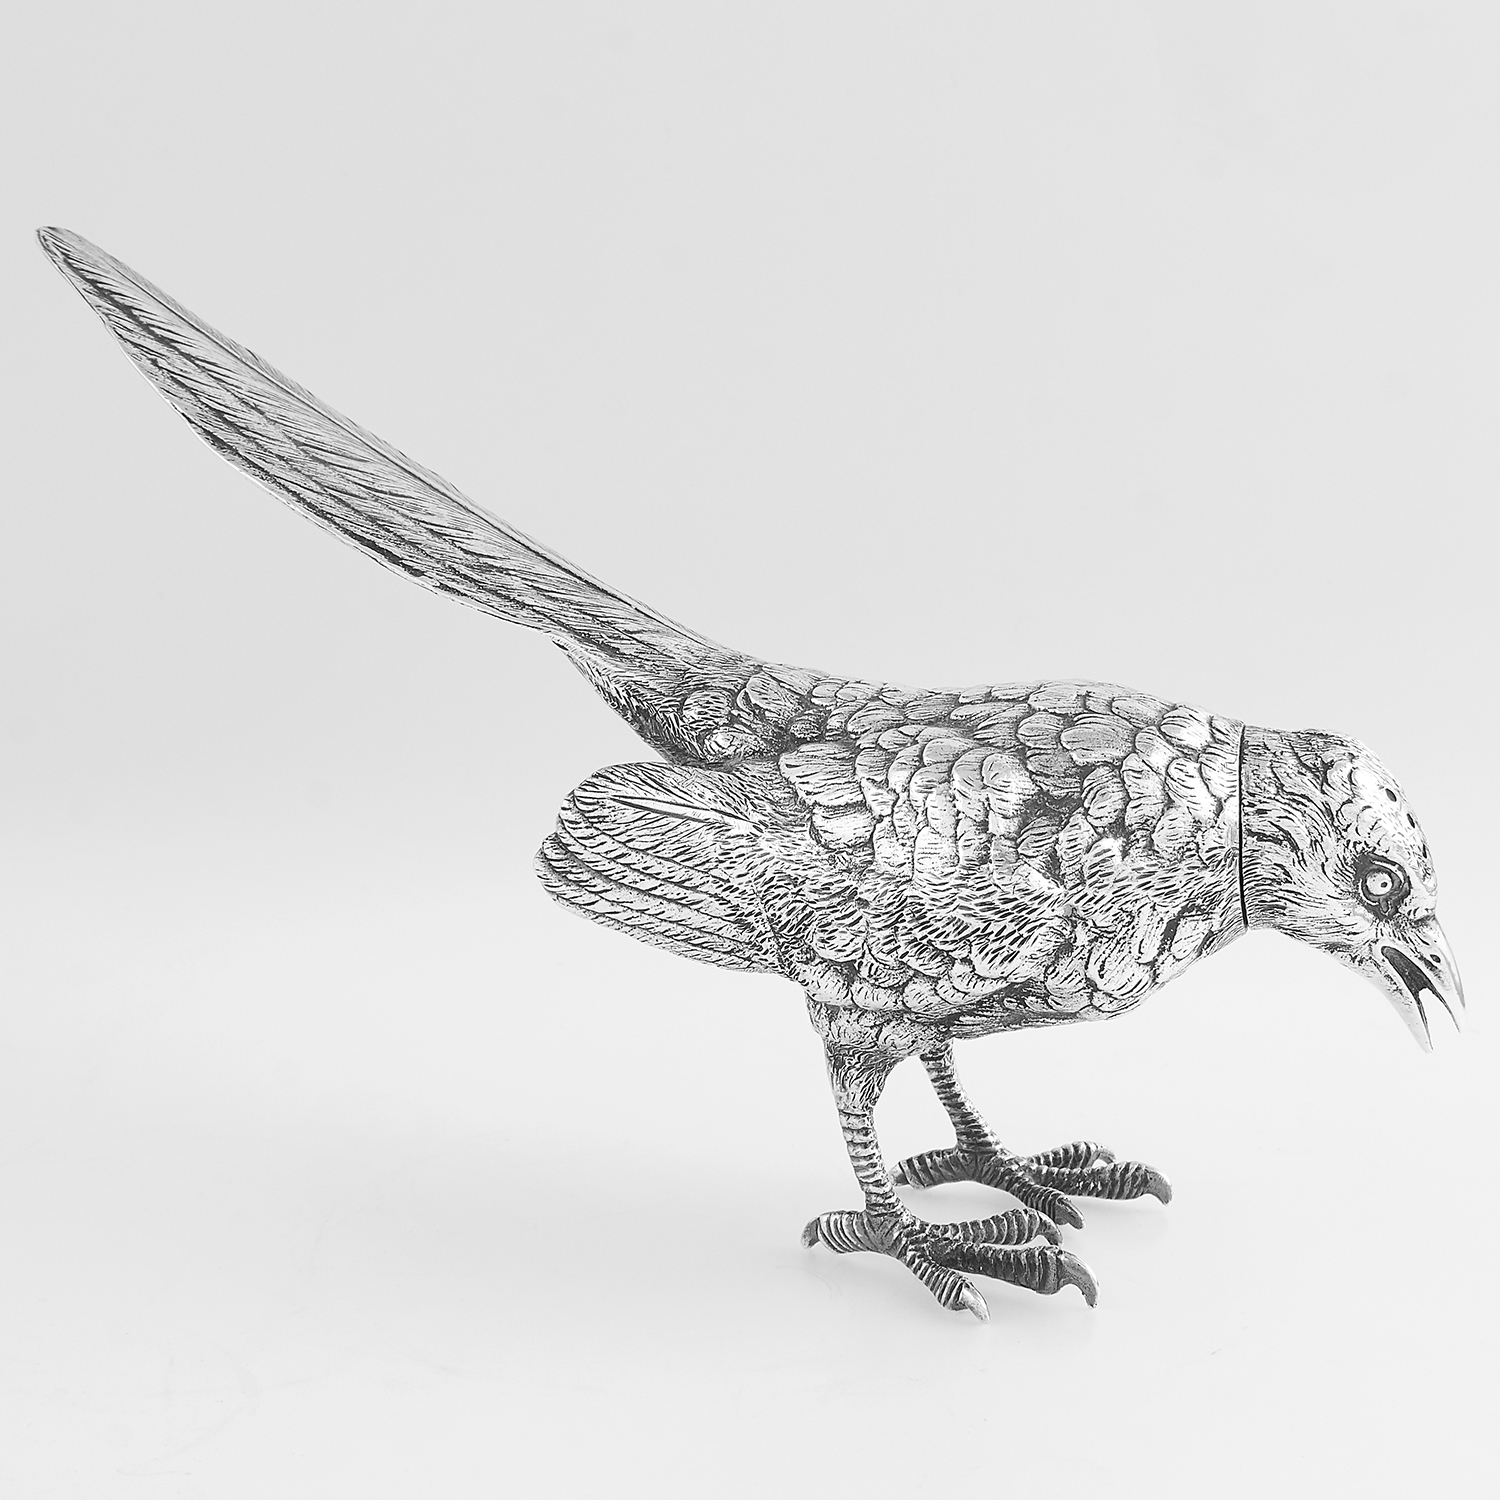 Los 66 - VINTAGE STERLING SILVER MAGPIE PEPPER POT, GARRARD & CO LONDON 1975 modelled as a magpie cast in